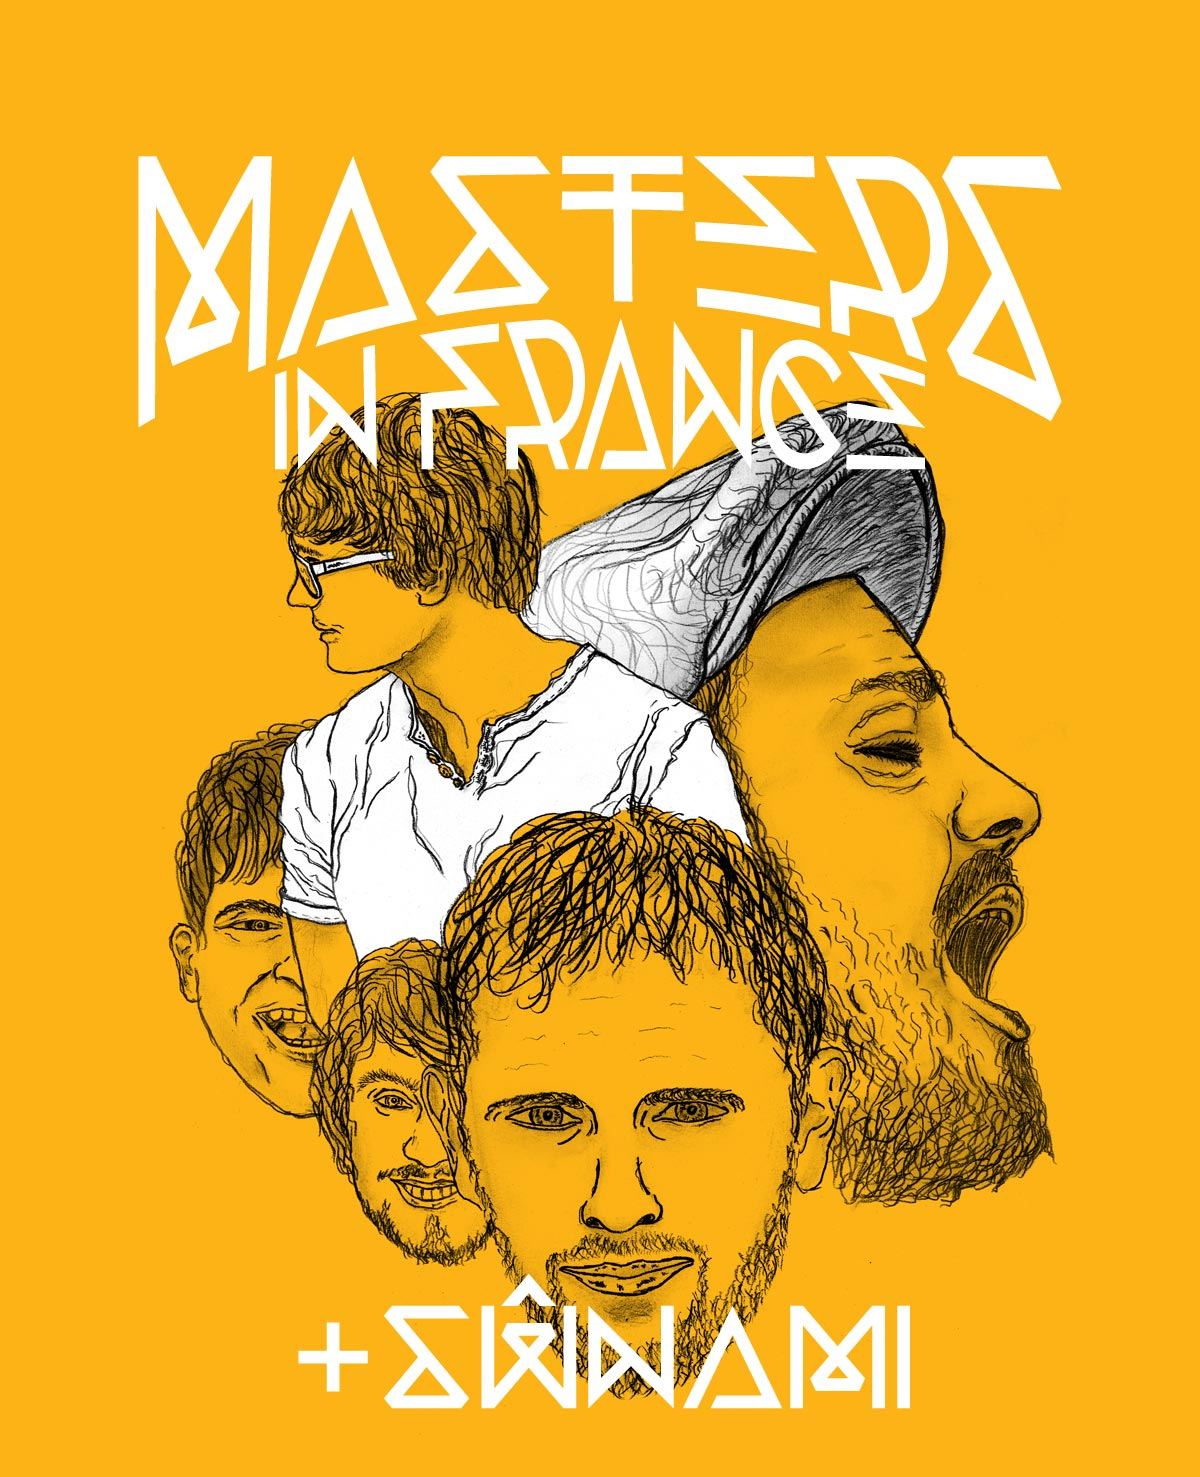 Masters in France illustration